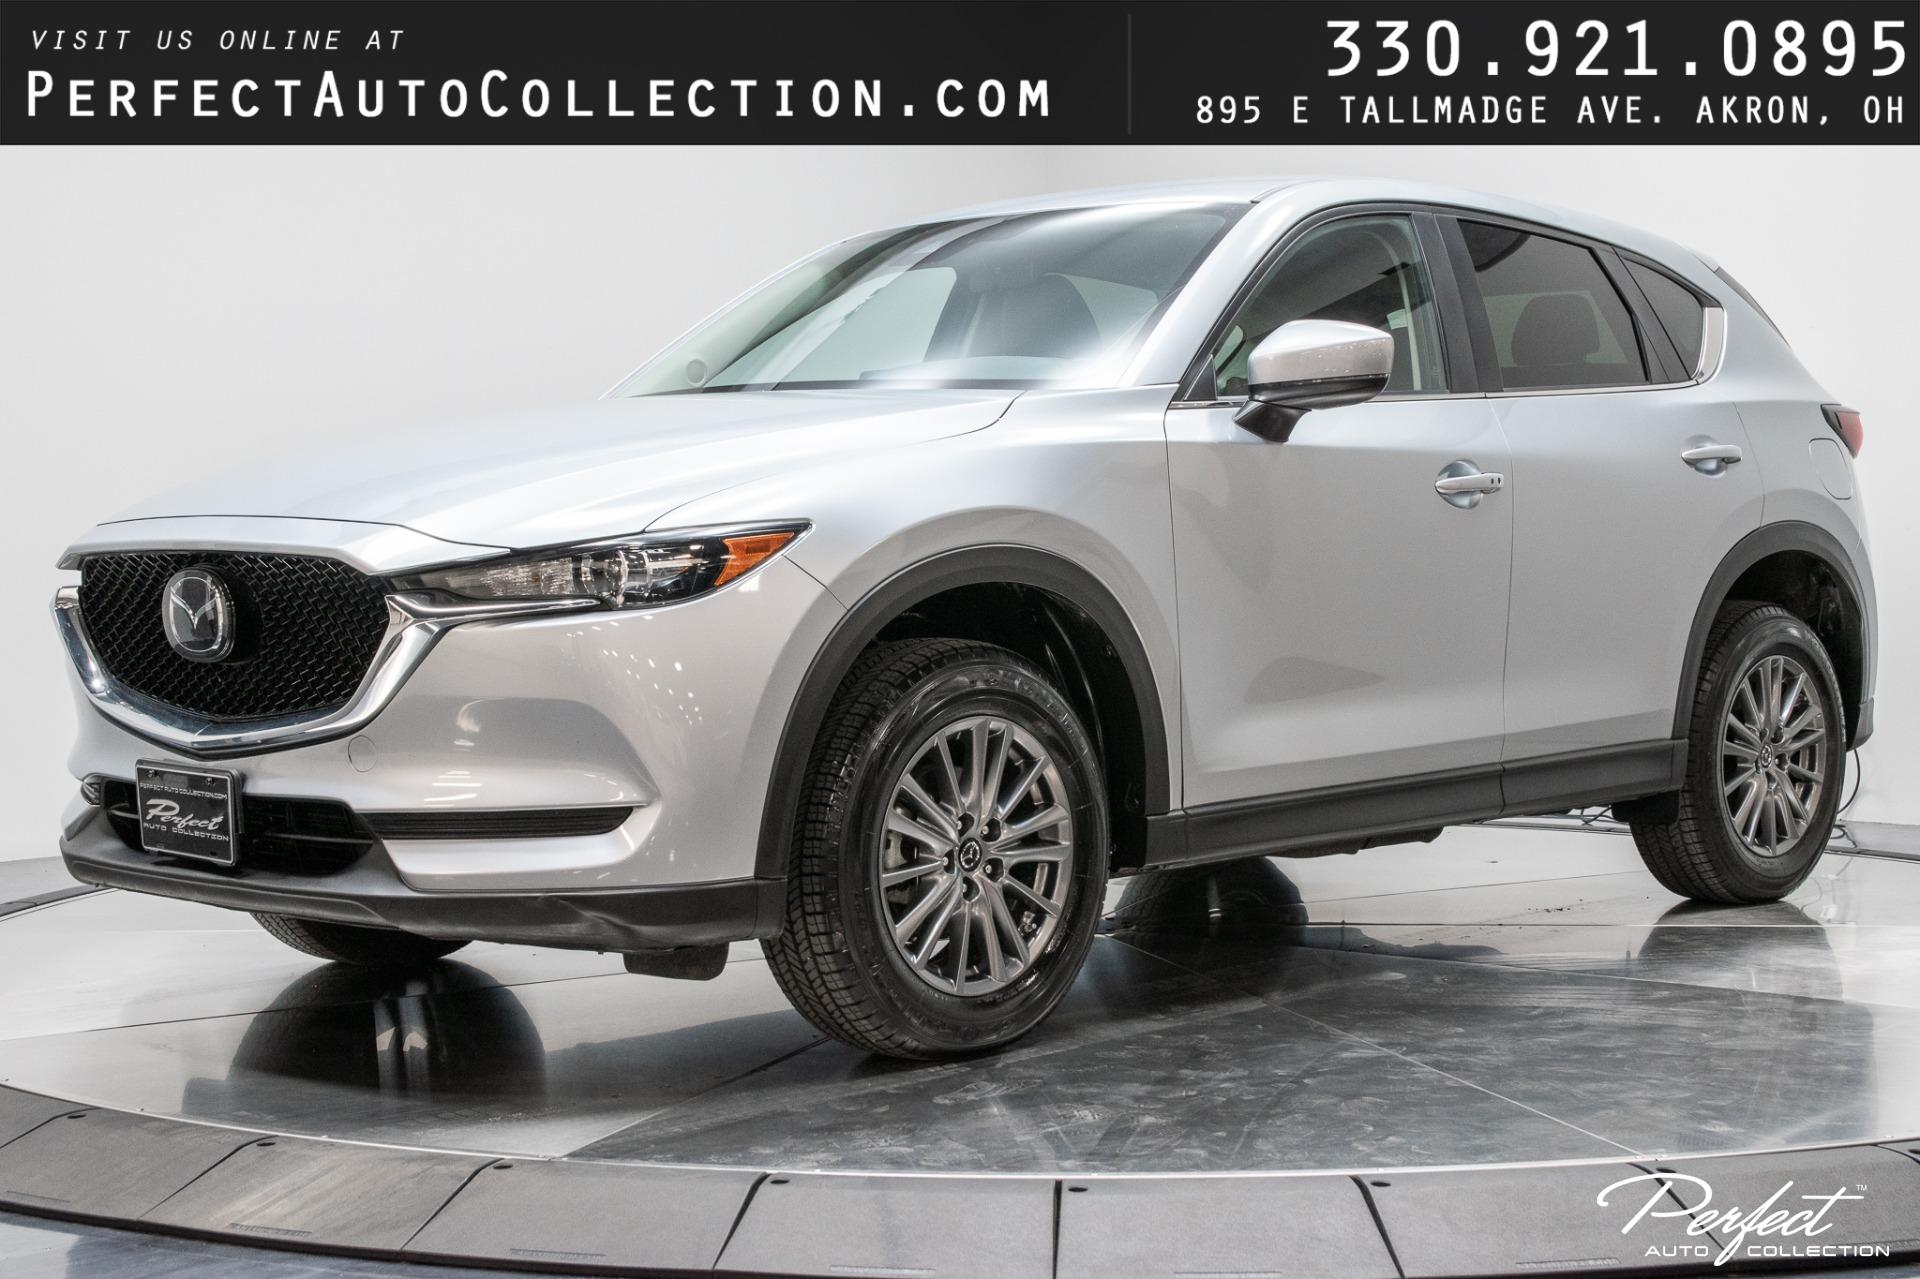 Used 2020 Mazda CX-5 Touring for sale $25,993 at Perfect Auto Collection in Akron OH 44310 1